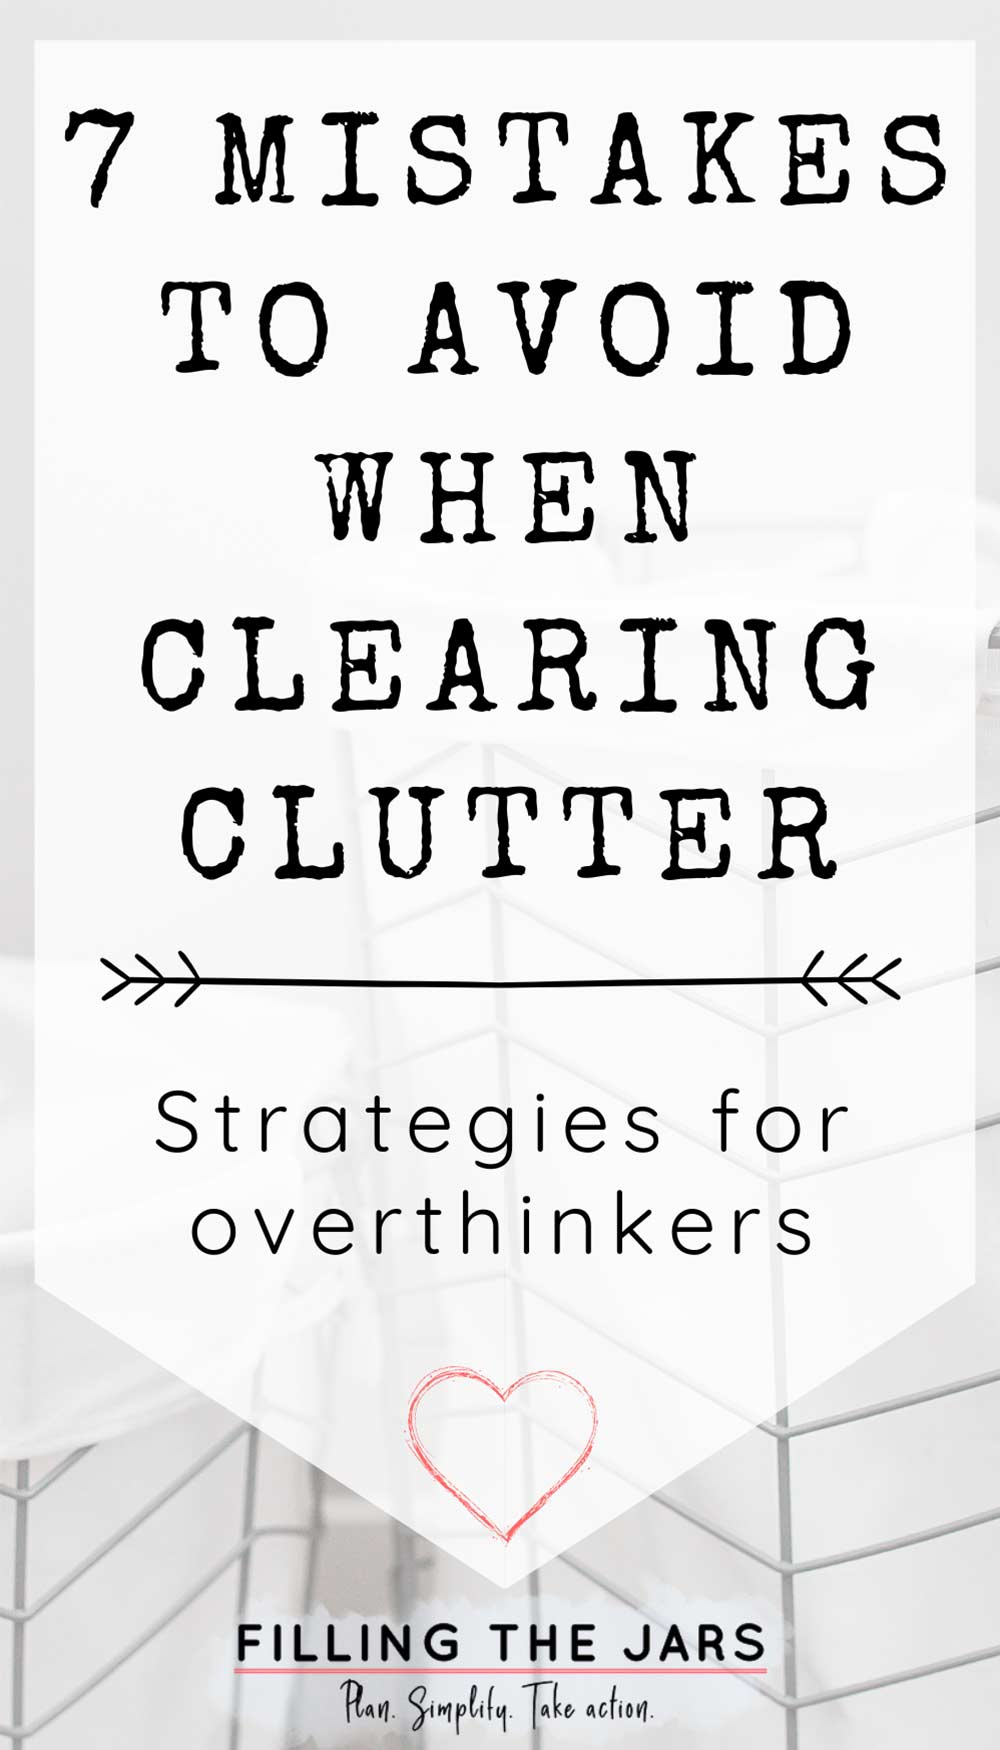 Text mistakes to avoid when clearing clutter on white background over image of wire bins against white wall.